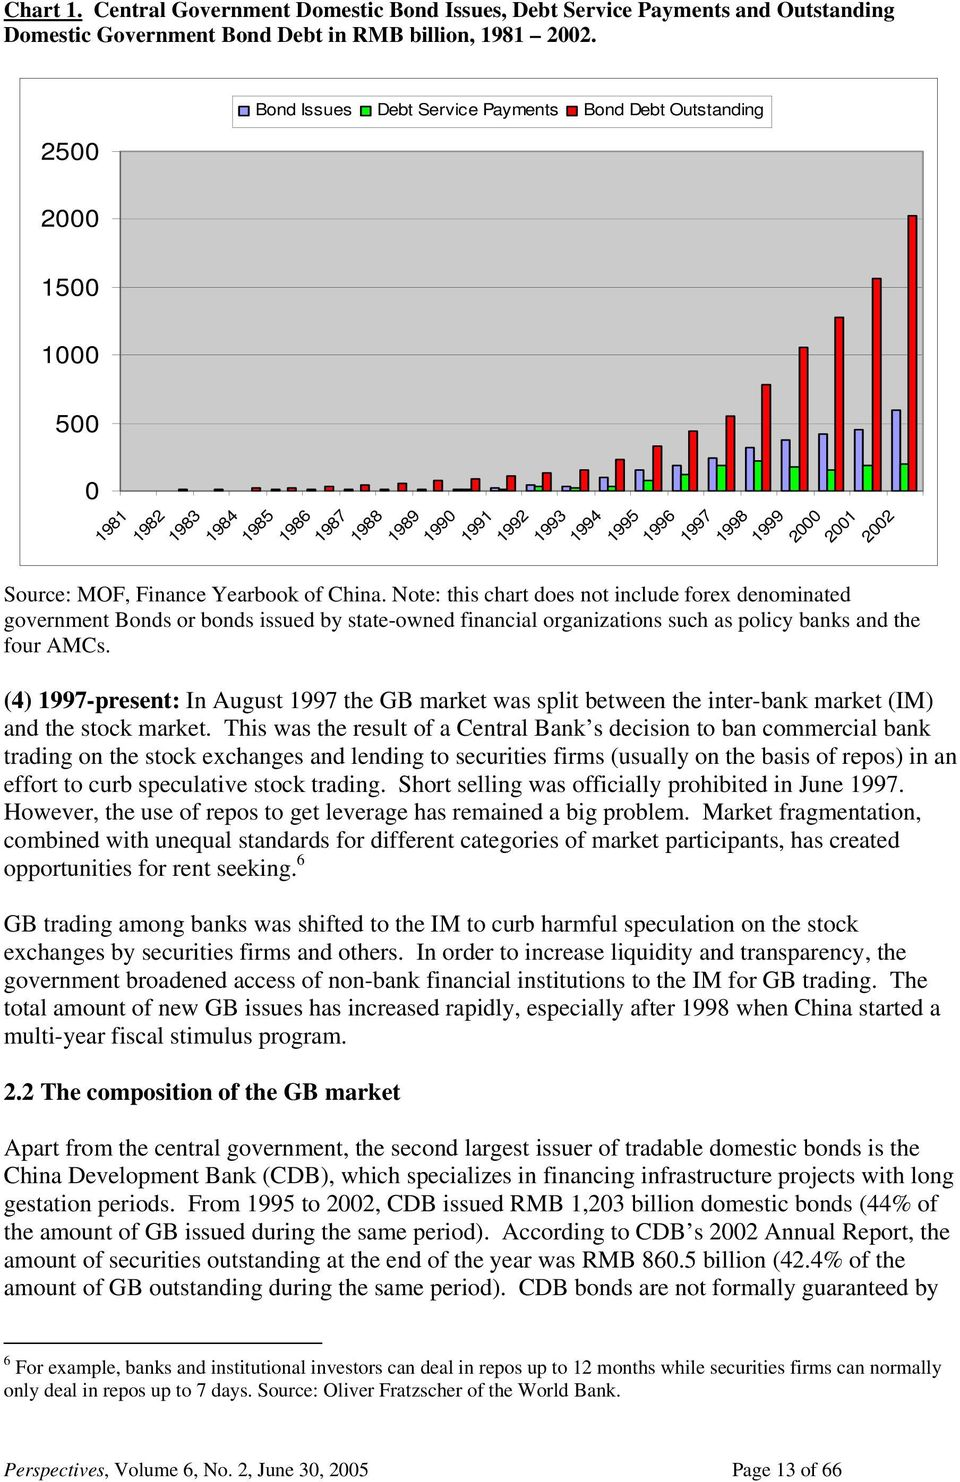 MOF, Finance Yearbook of China. Note: this chart does not include forex denominated government Bonds or bonds issued by state-owned financial organizations such as policy banks and the four AMCs.